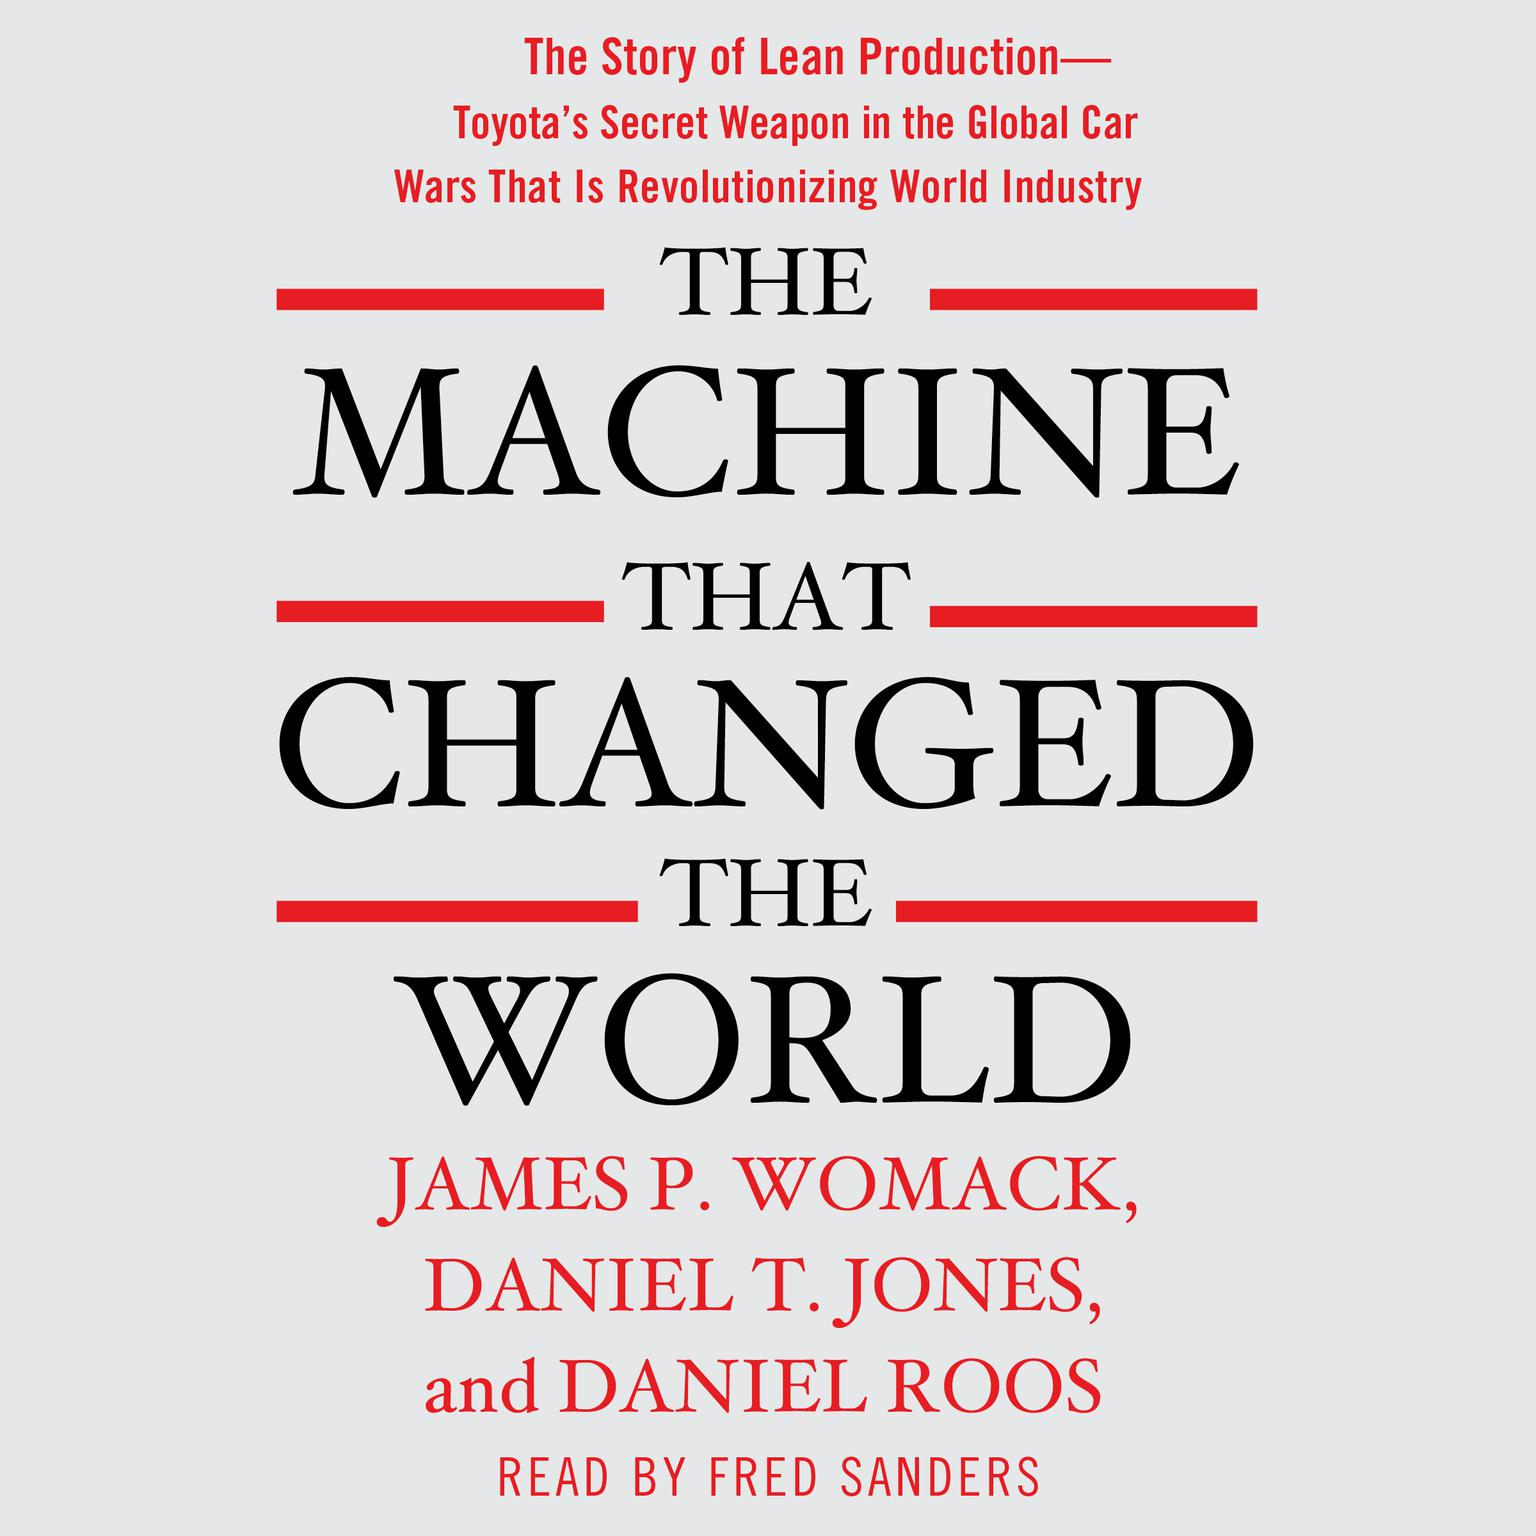 The Machine That Changed the World: The Story of Lean Production-- Toyotas Secret Weapon in the Global Car Wars That Is Now Revolutionizing World Industry Audiobook, by James P. Womack